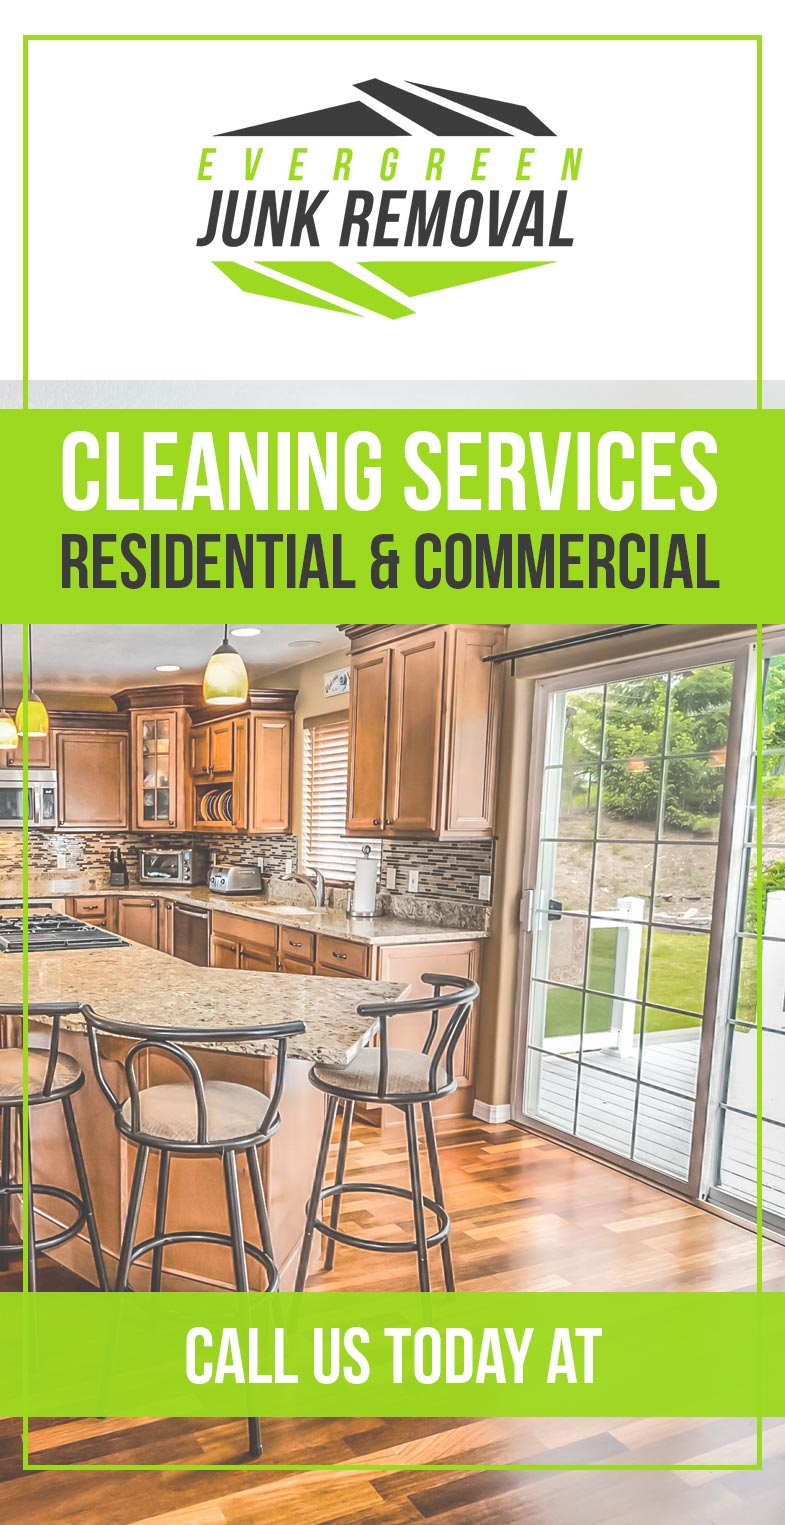 Jupiter Inlet Colony Maid Services